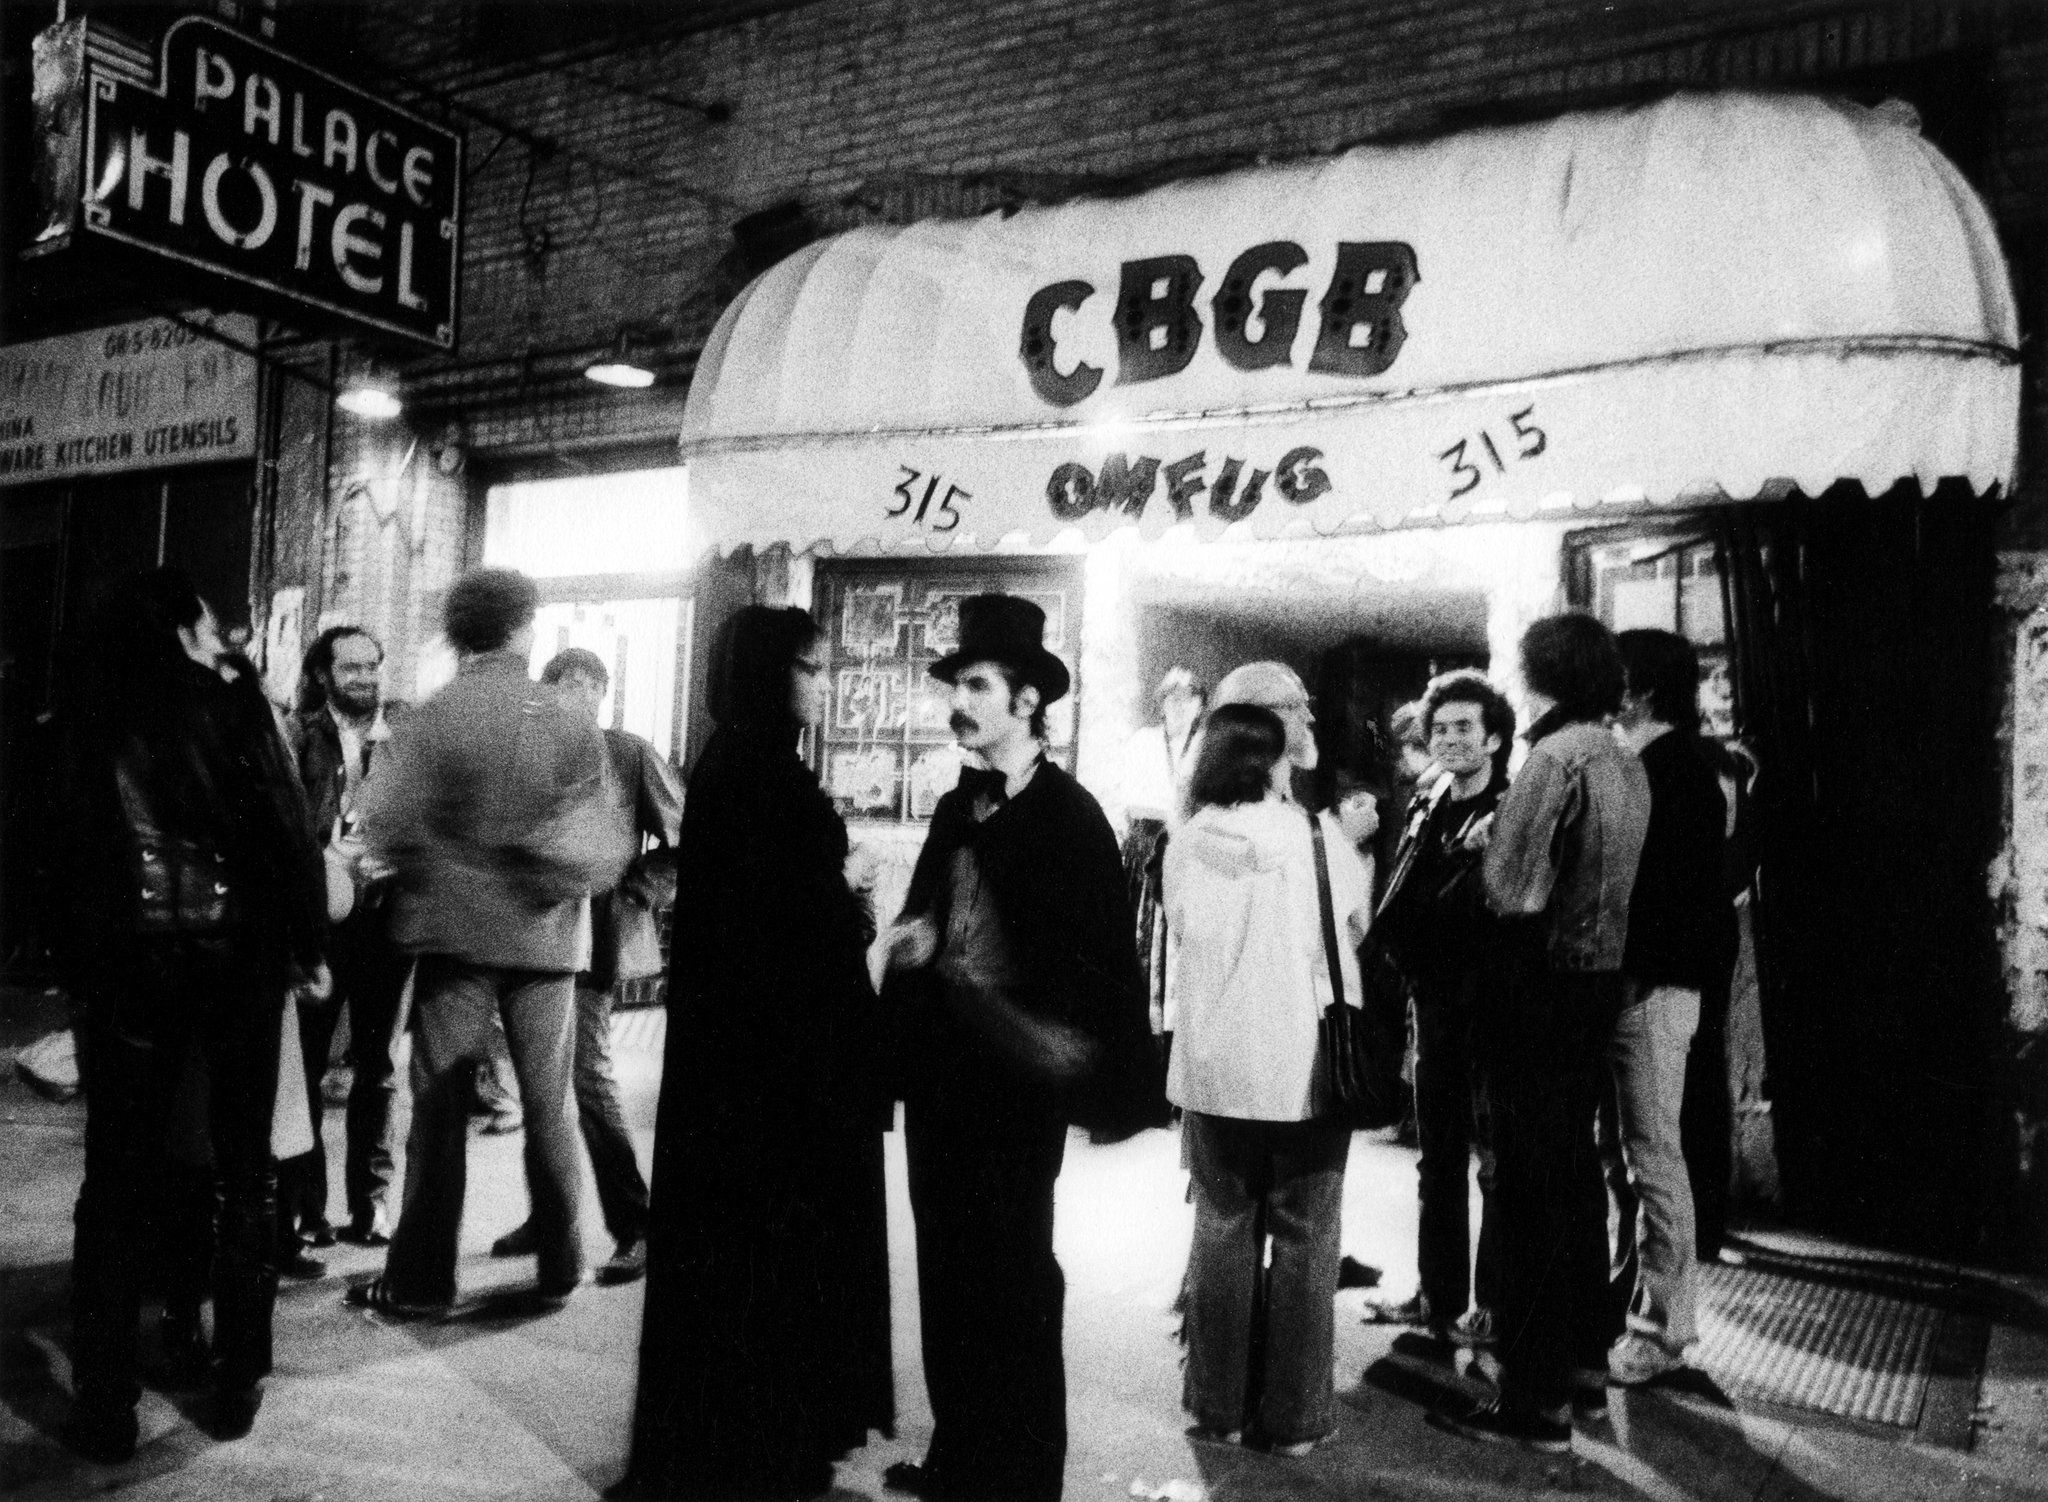 Back in the punk days when cbgb was the place to be